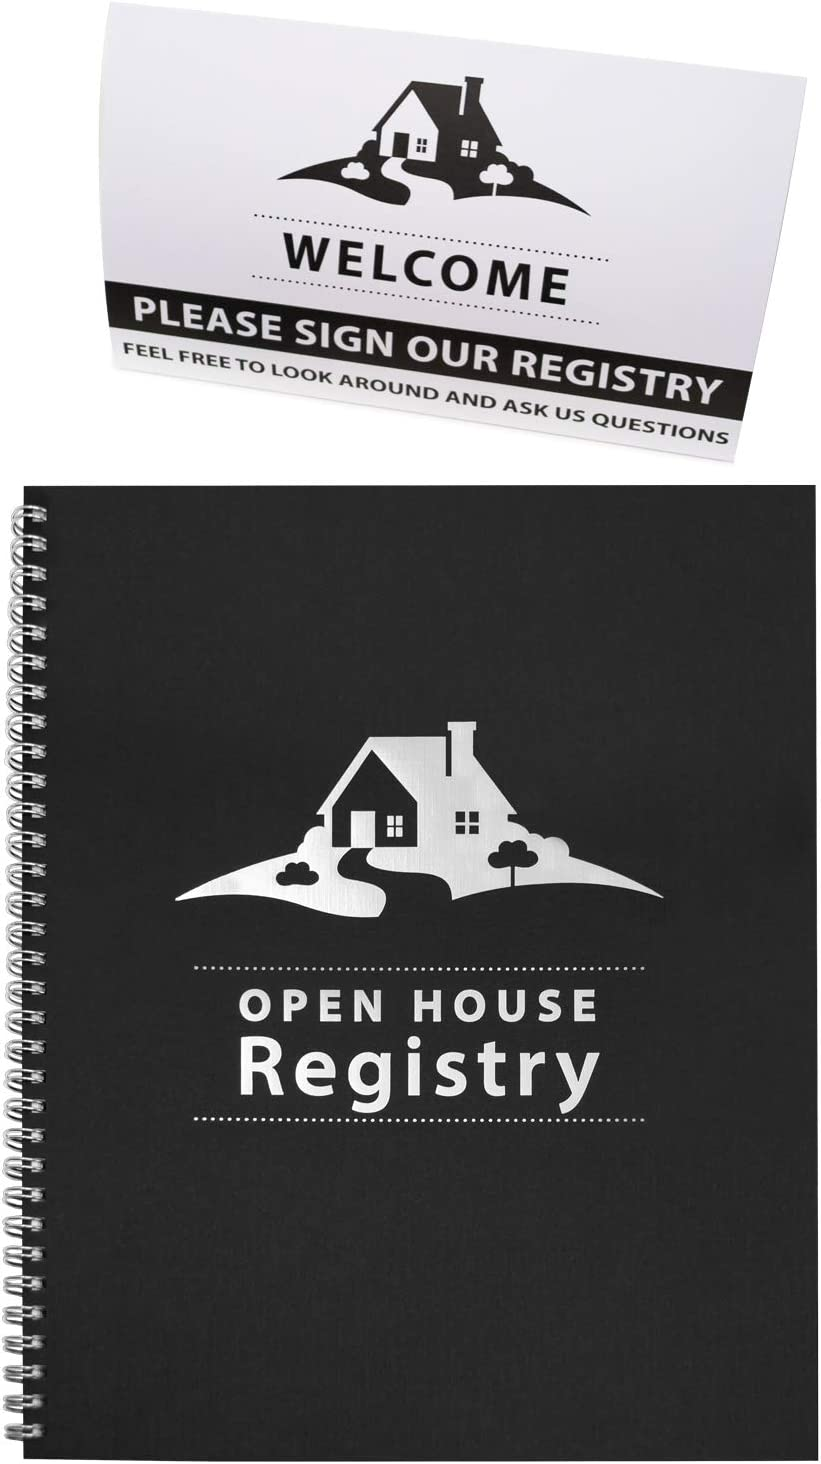 Open House Registry - Spiral Bound - Includes Welcome, Please Sign Our Registry - Double Sided Tent Card - Great Prospecting Tool for Real Estate Agents & Brokers (Black)